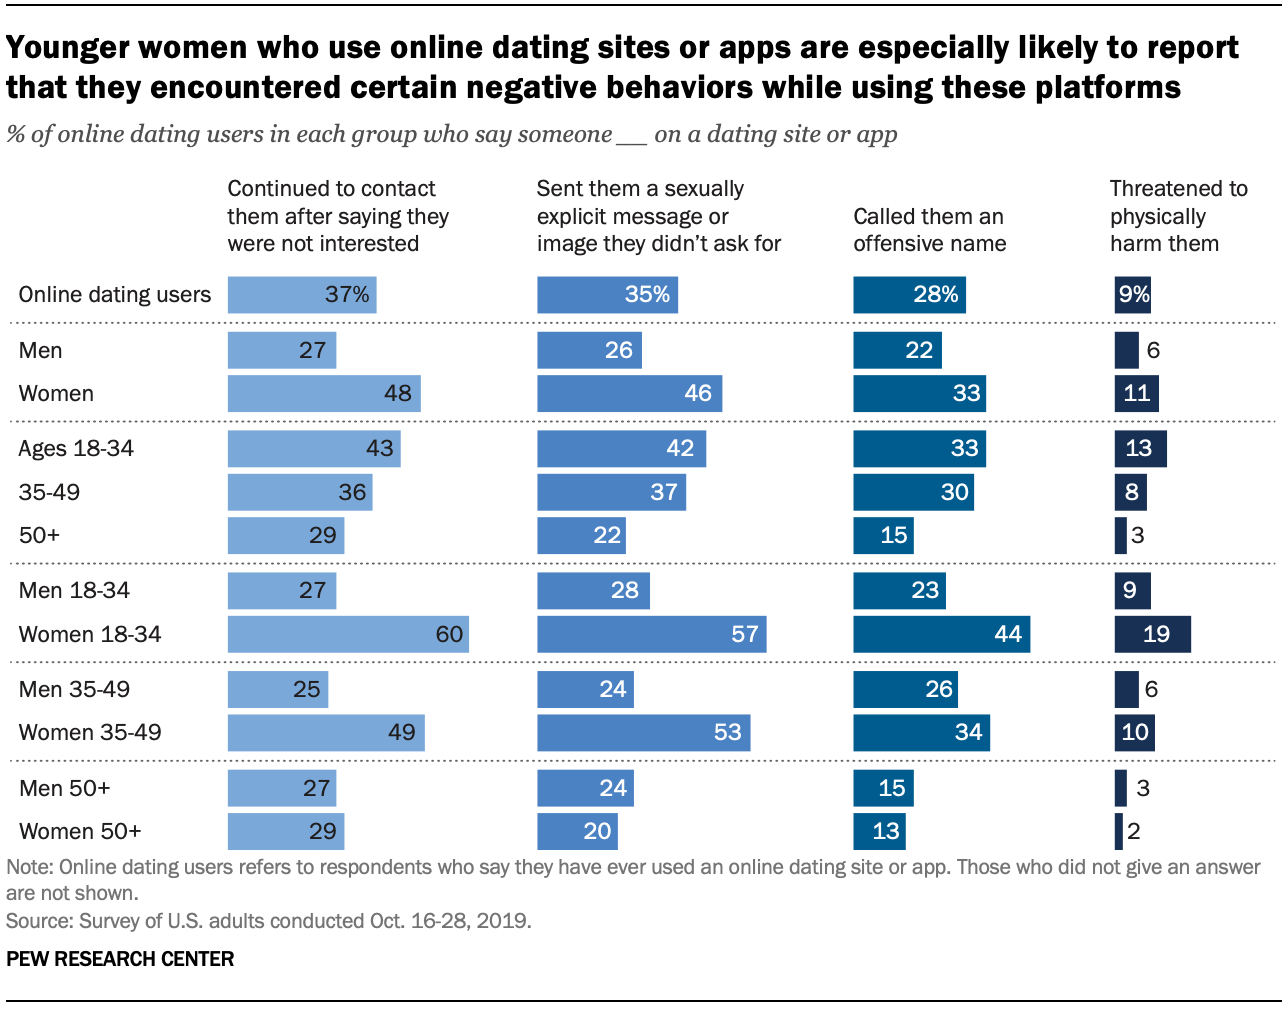 Chart shows younger women who use online dating sites or apps are especially likely to report that they encountered certain negative behaviors while using these platforms